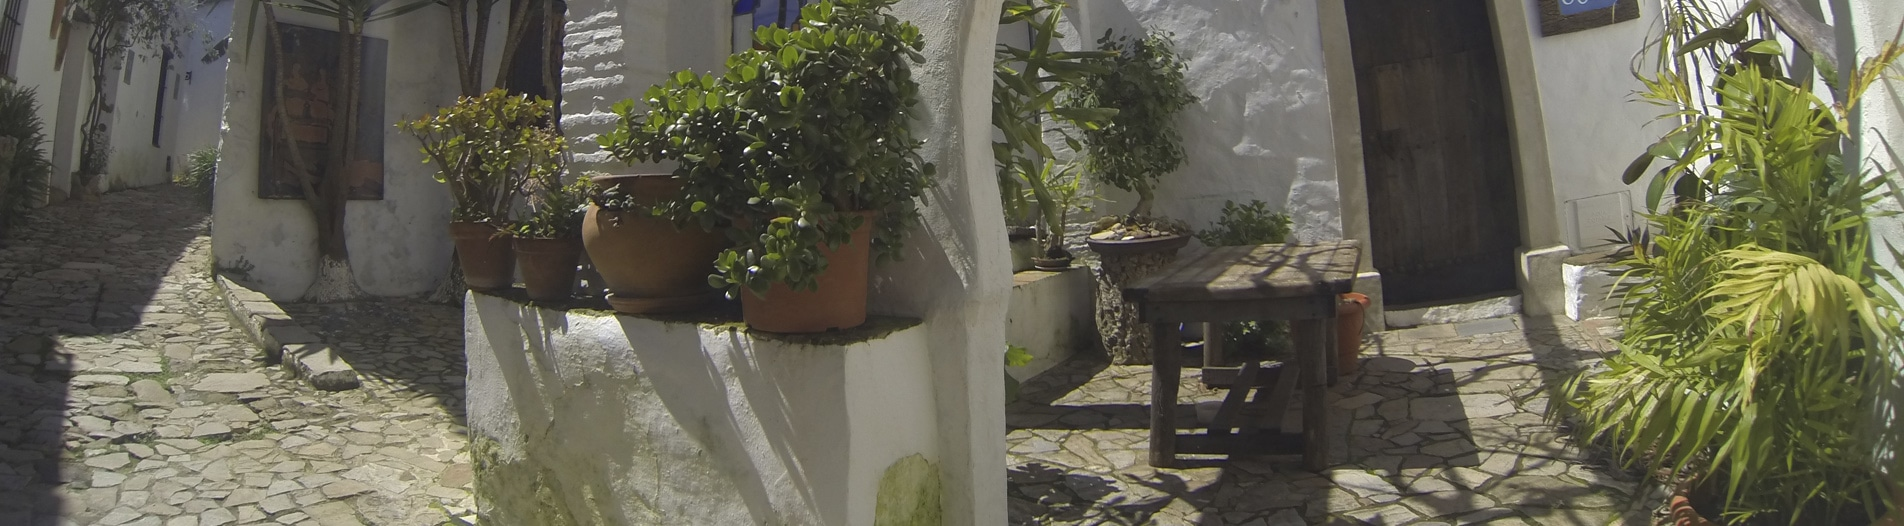 White towns andalucia